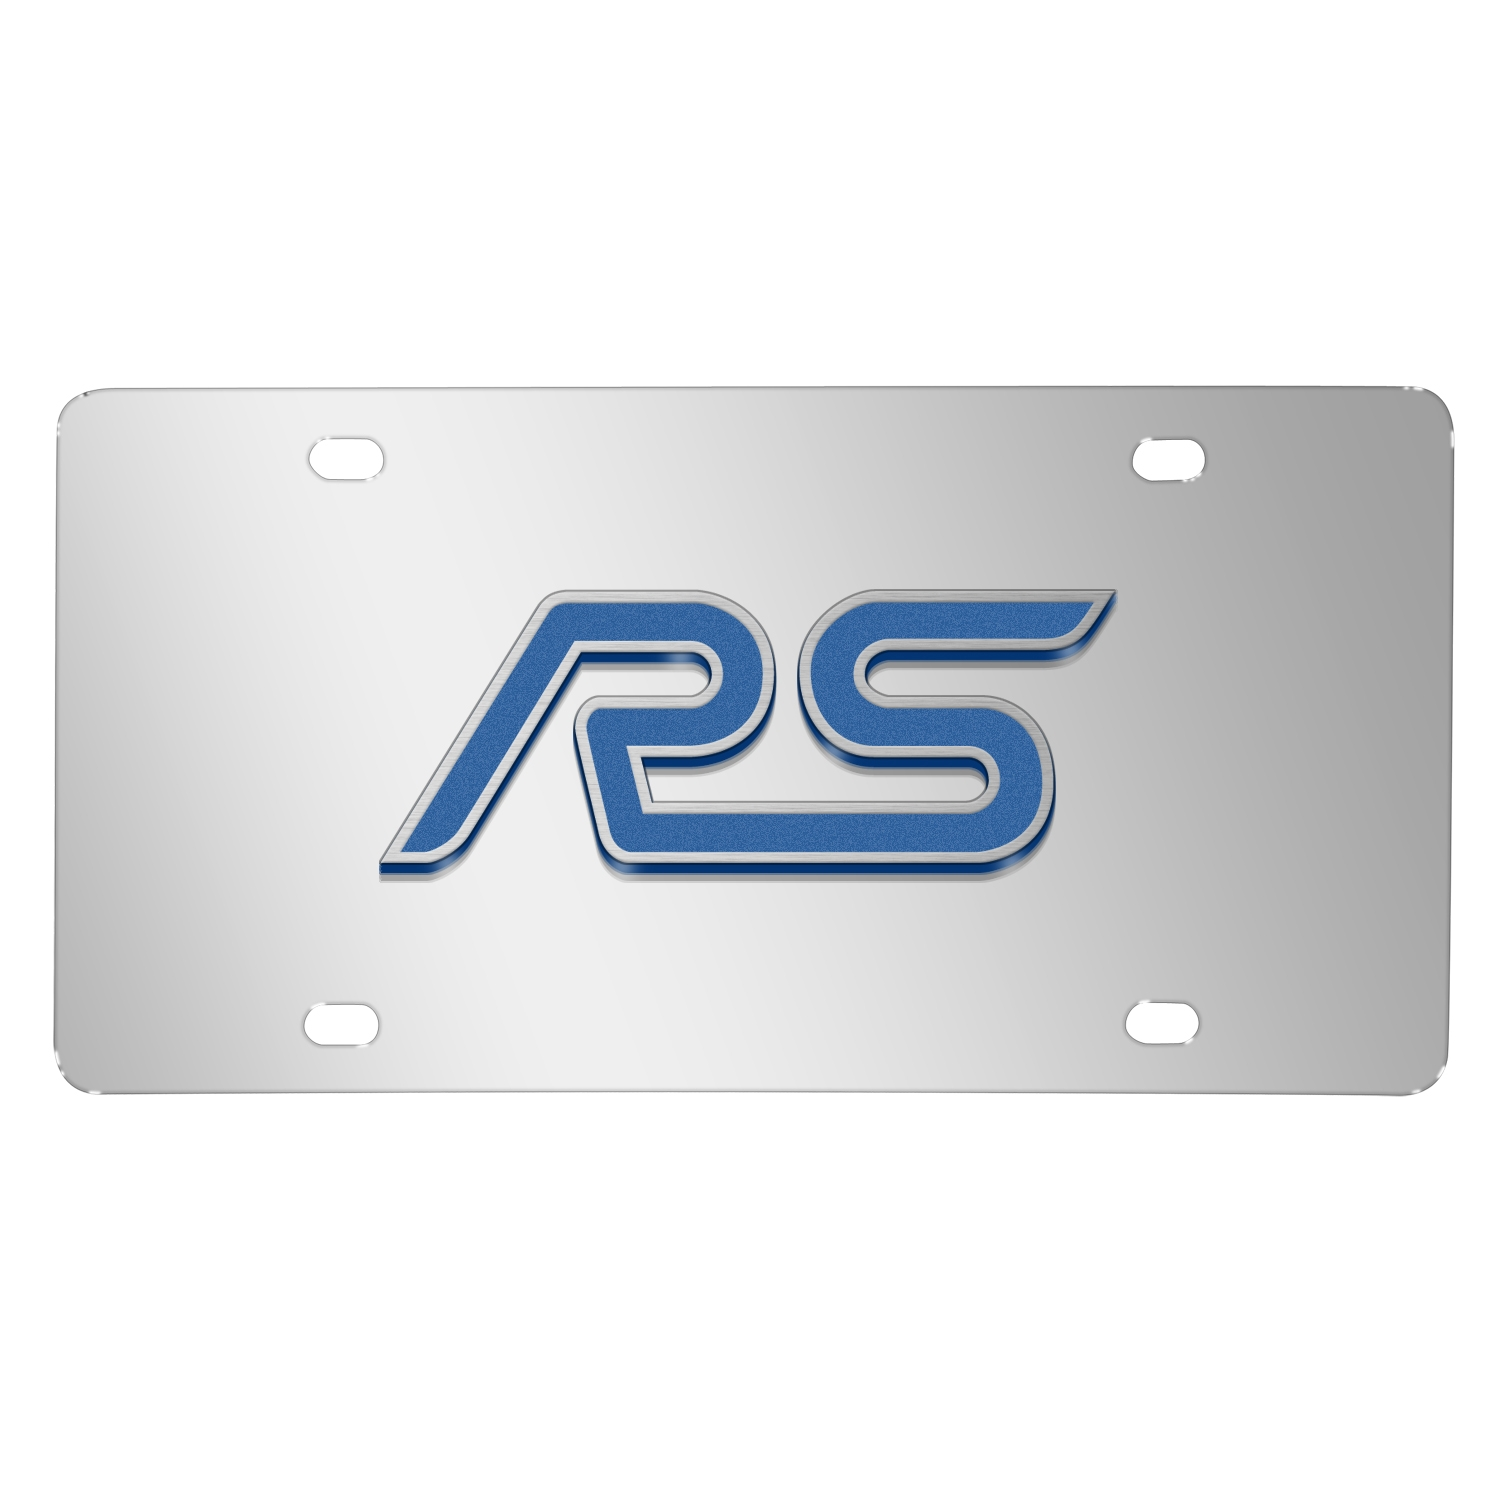 Ford Focus RS 3D Mirror Chrome Stainless Steel License Plate